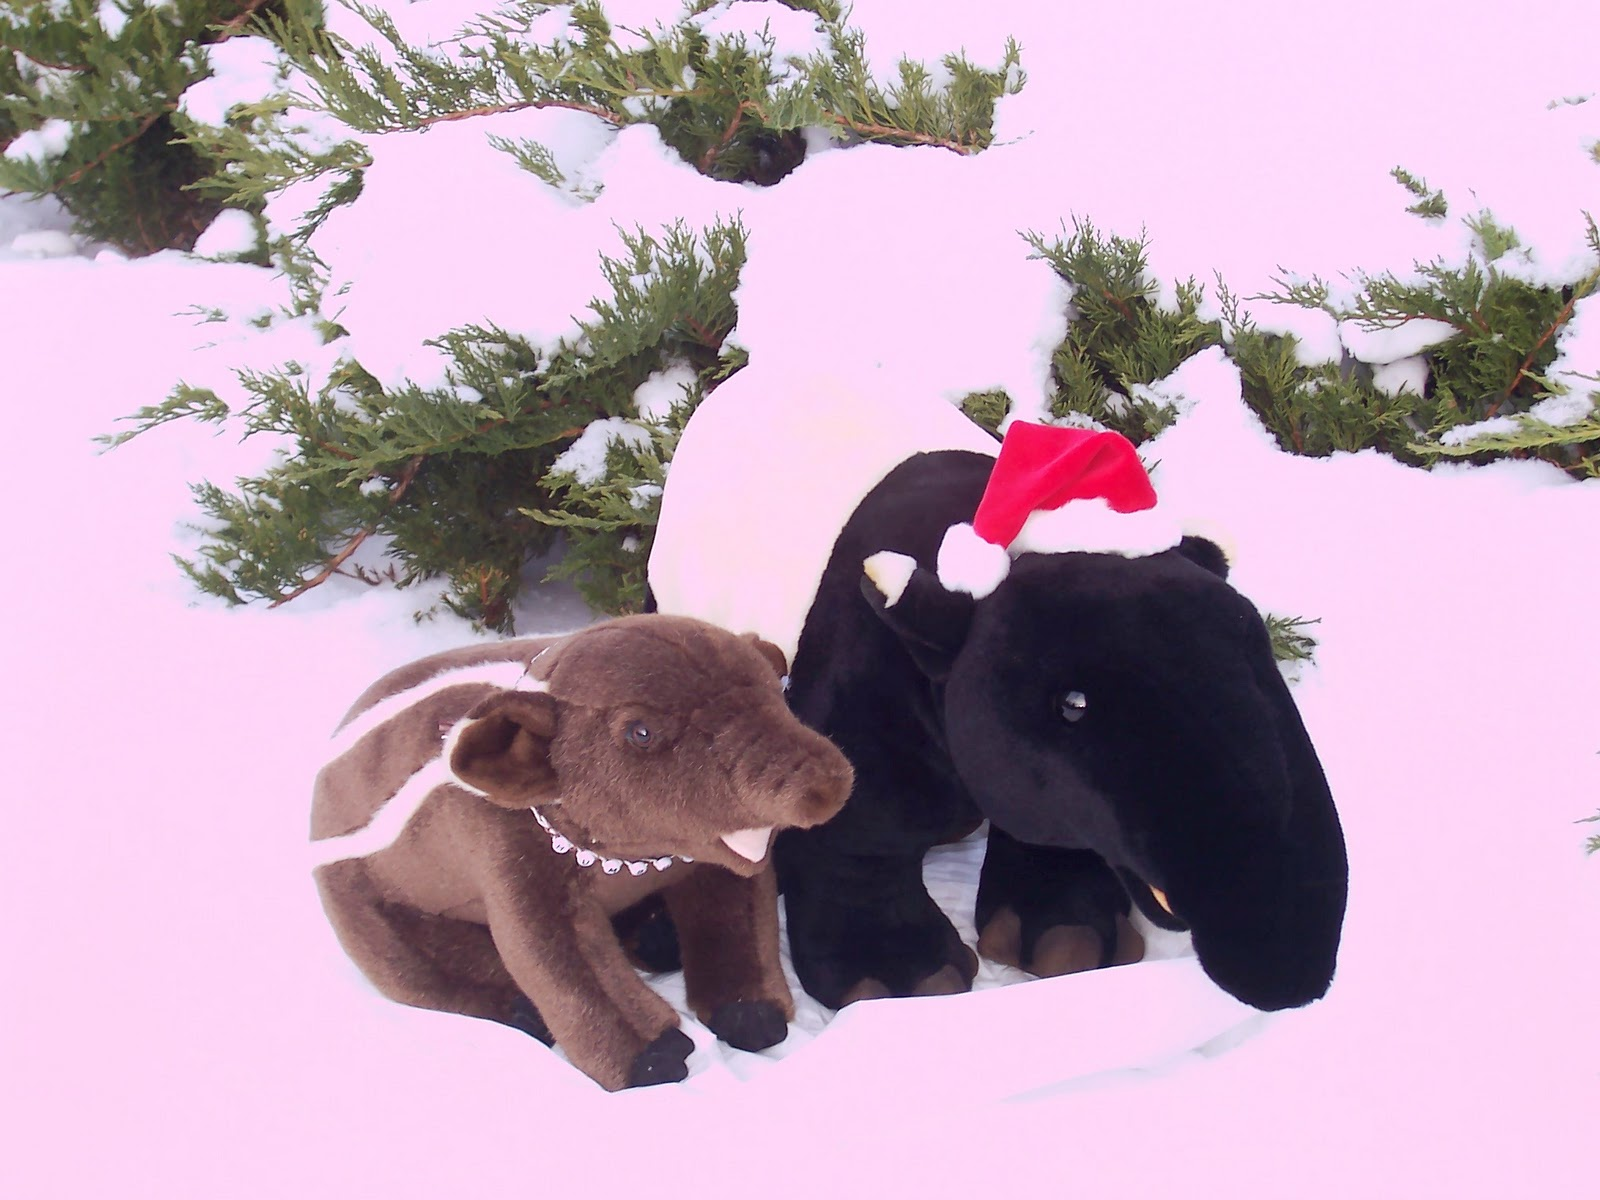 Christmas tapirs in the snow